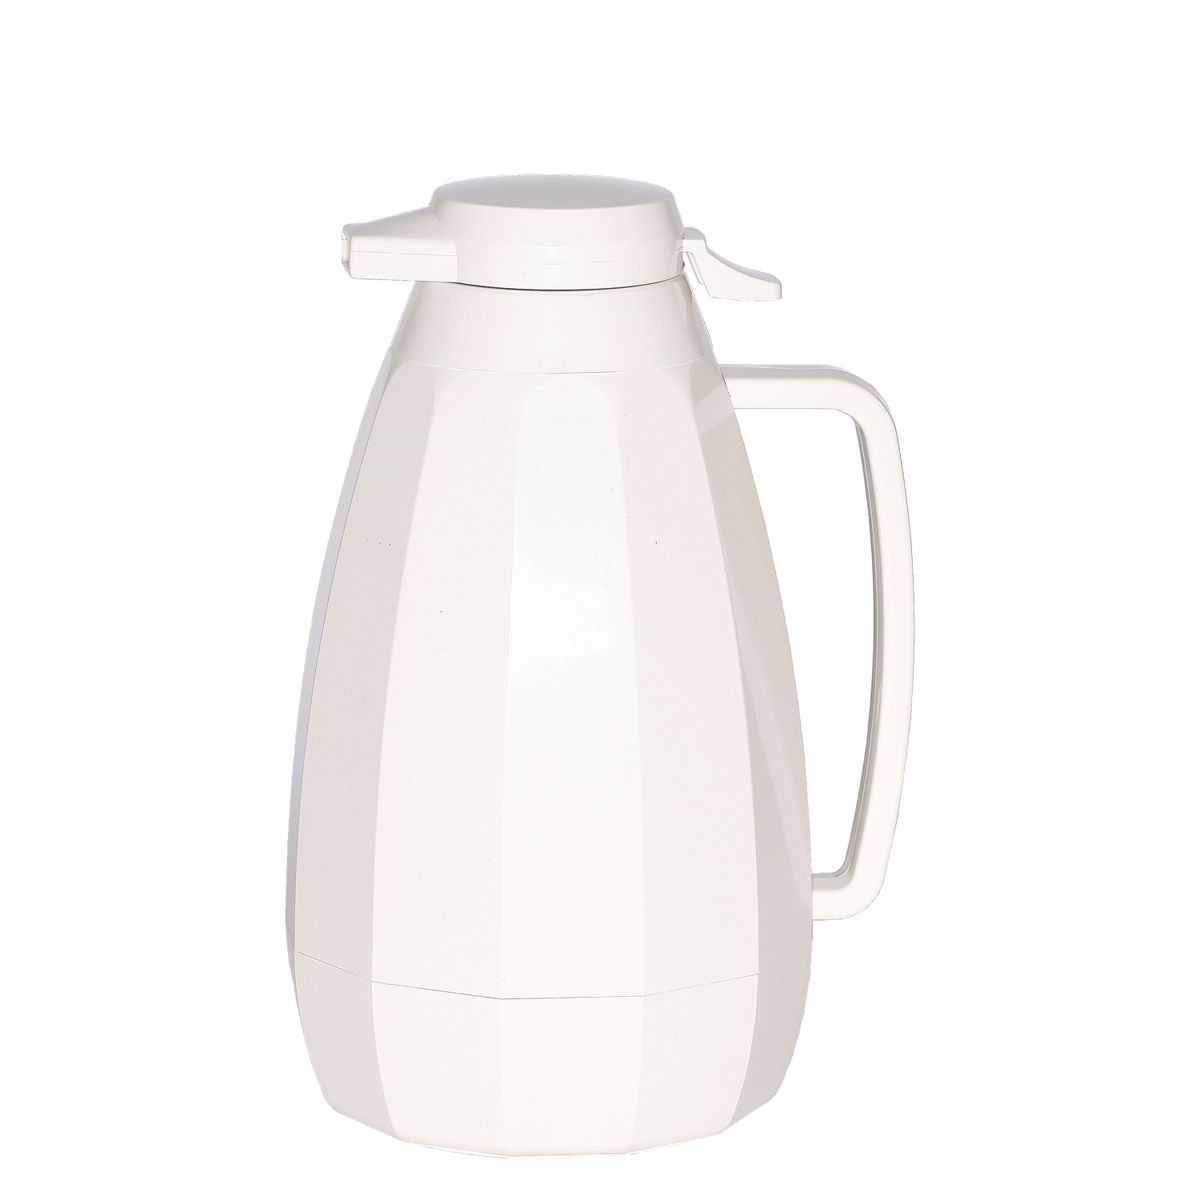 Service Ideas NG421WH White New Generation Coffee Server, 2 Liter  (68 oz.)